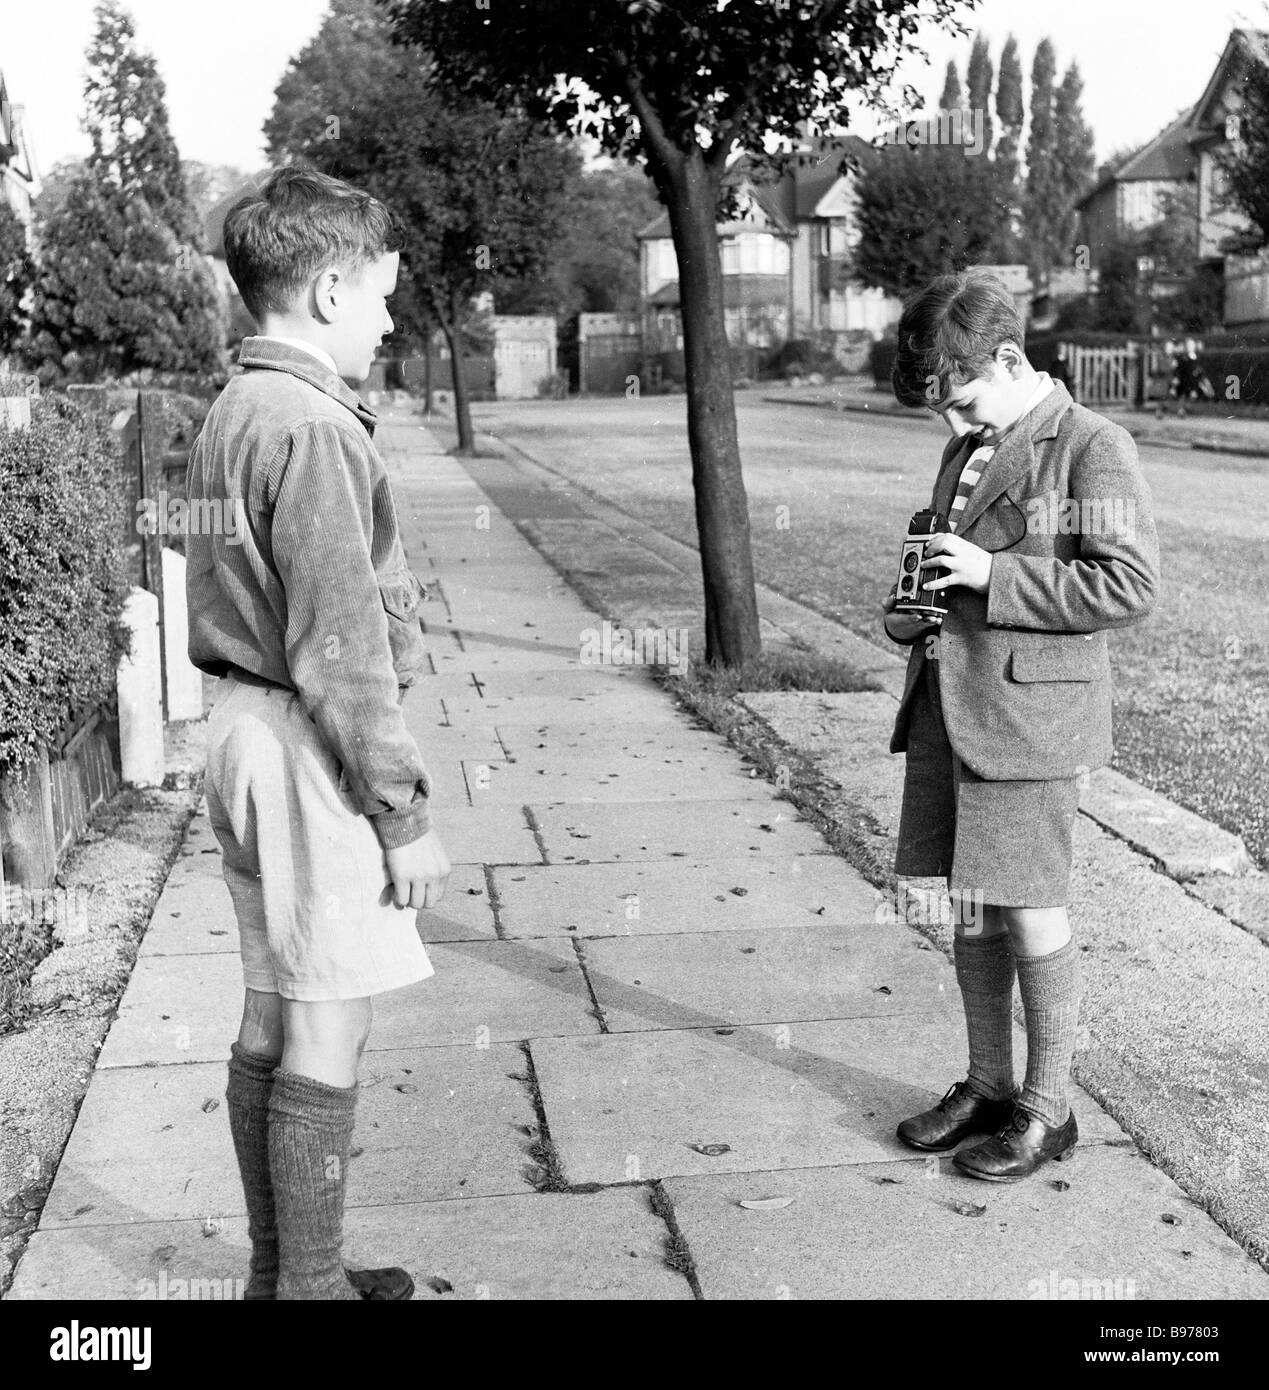 1950s, historical, young boy in school uniform taking a photograph of his school friend with a Kodak Brownie Reflex' - Stock Image